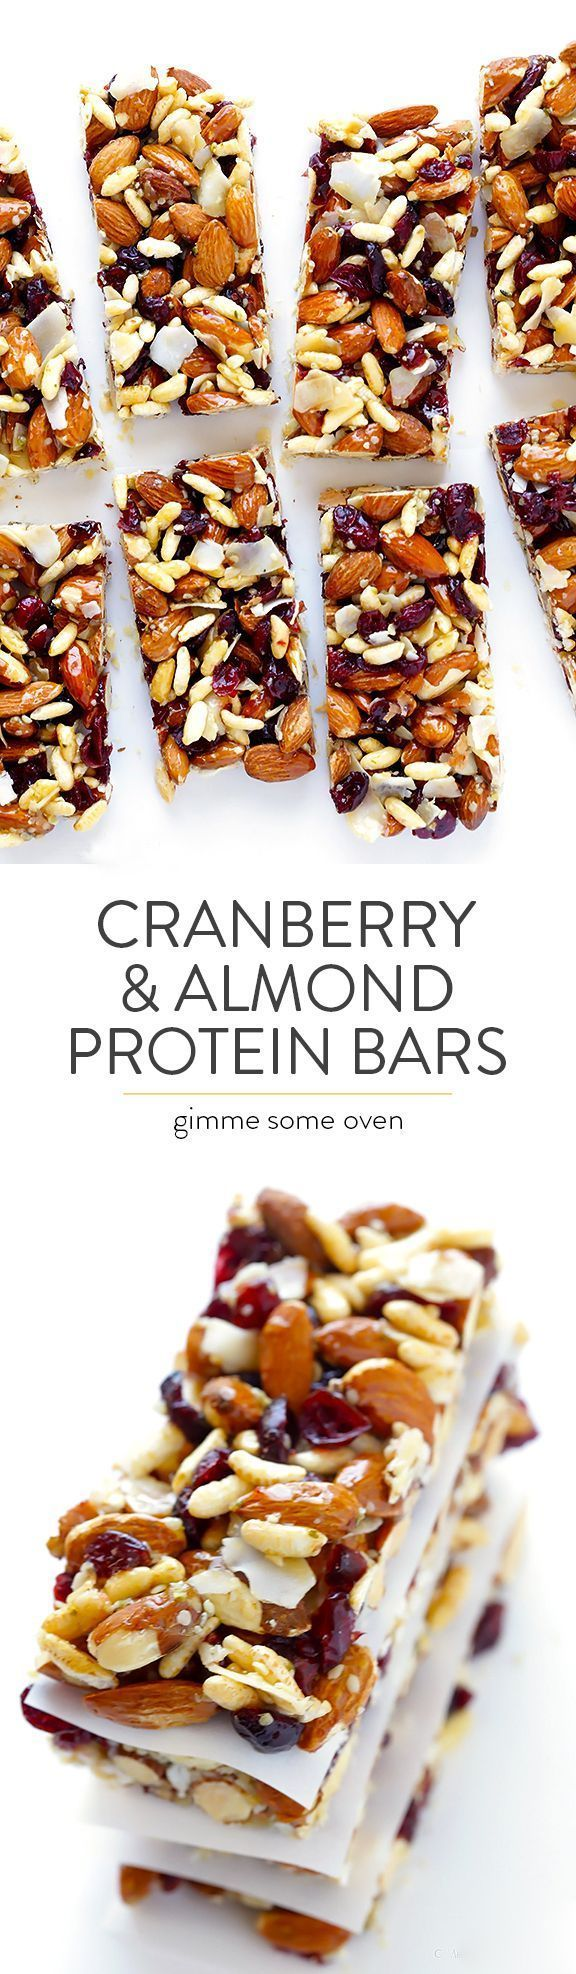 Fruit sugar splash - Cranberry Almond Protein Bars Recipe Easy To Make At Home Super Tasty